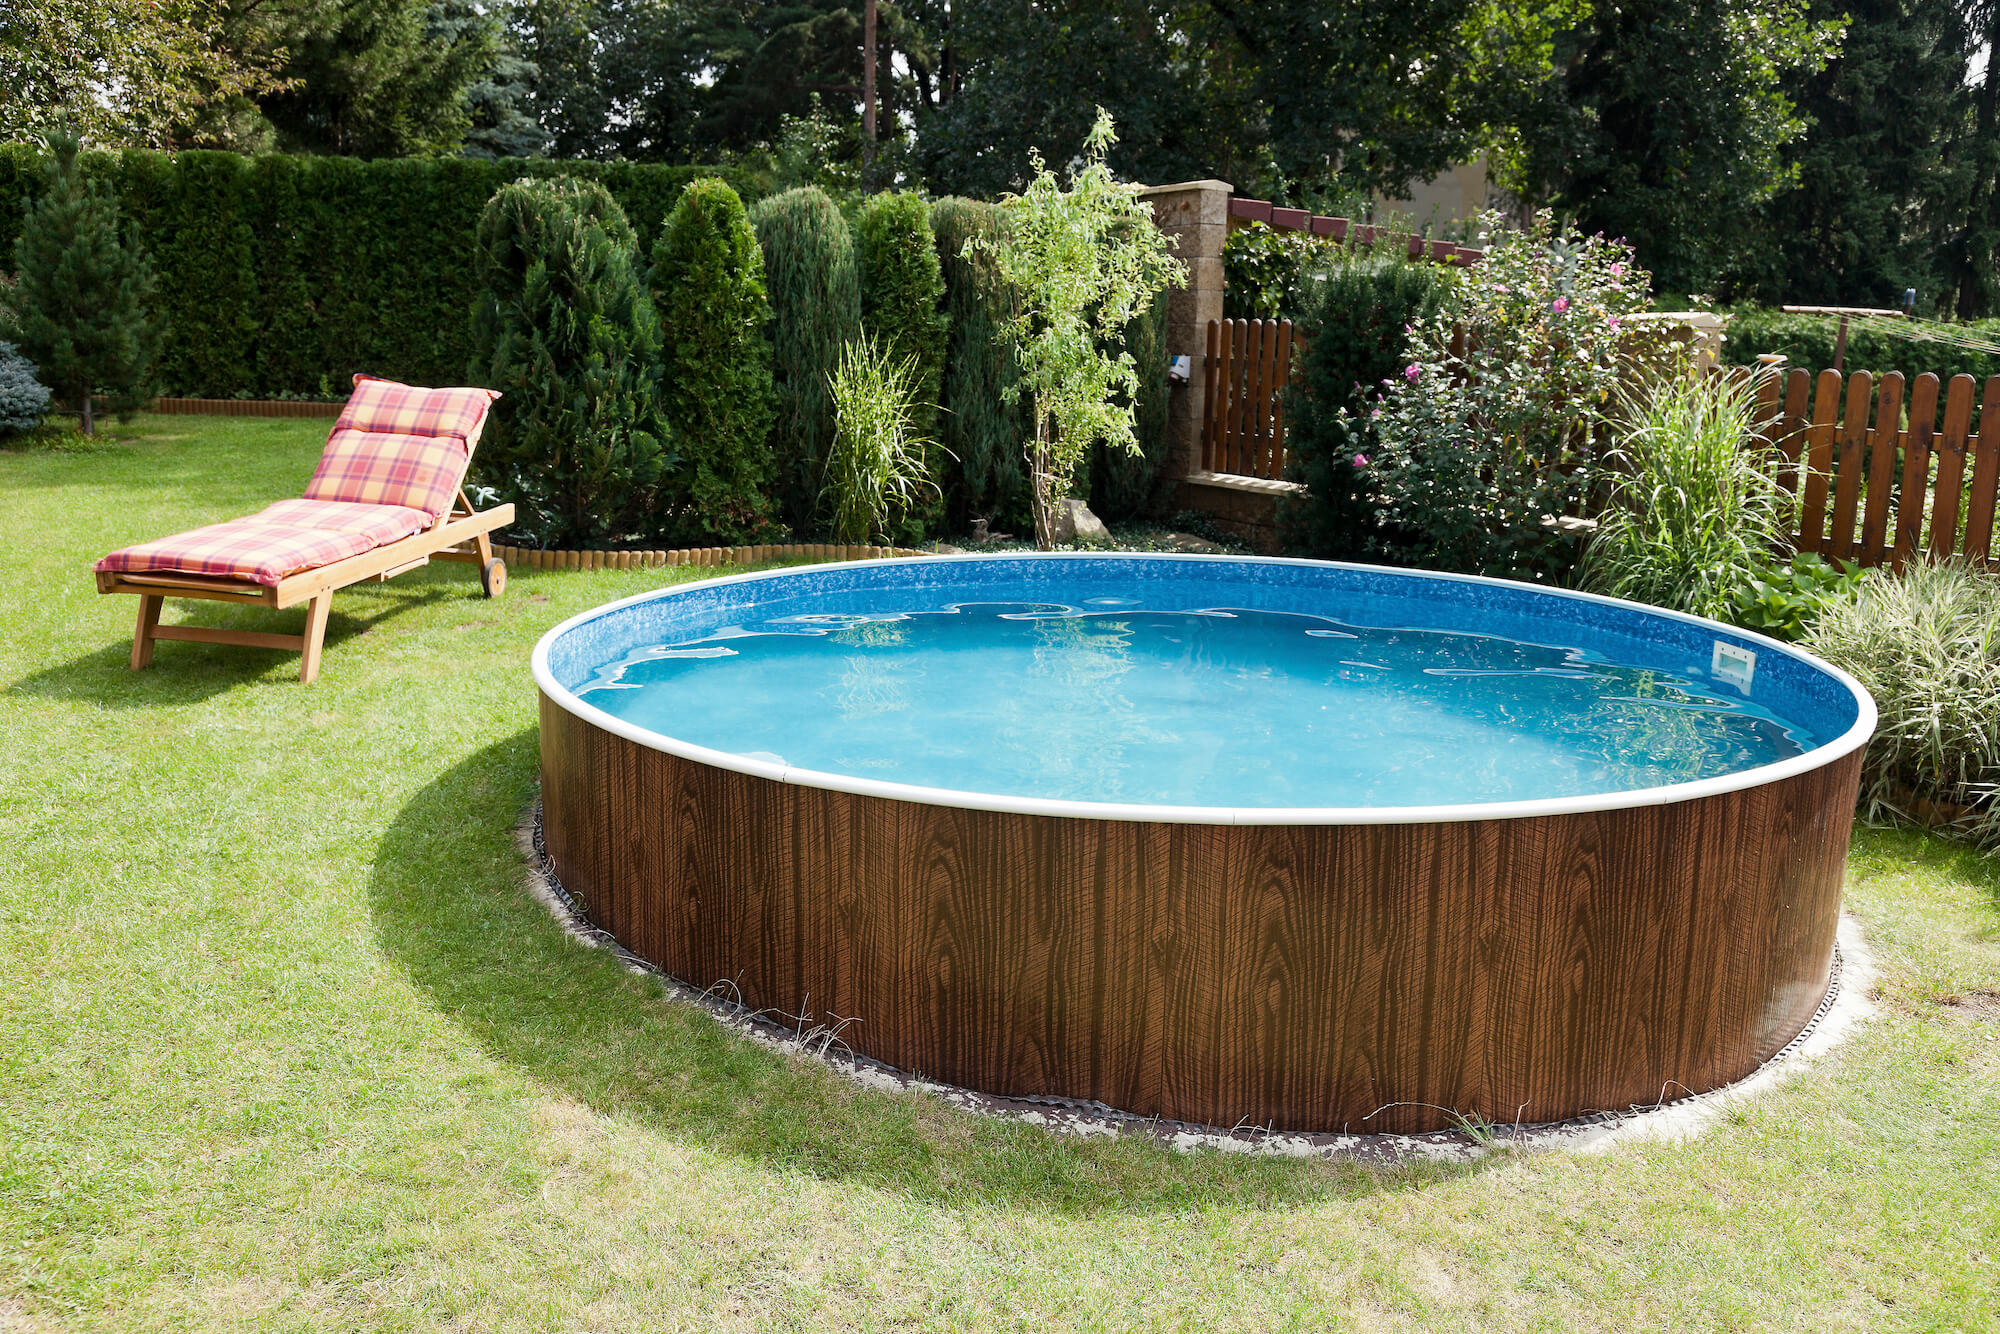 Bestway Pools The Range Above Ground Swimming Pools For Sale Online Uk 1st